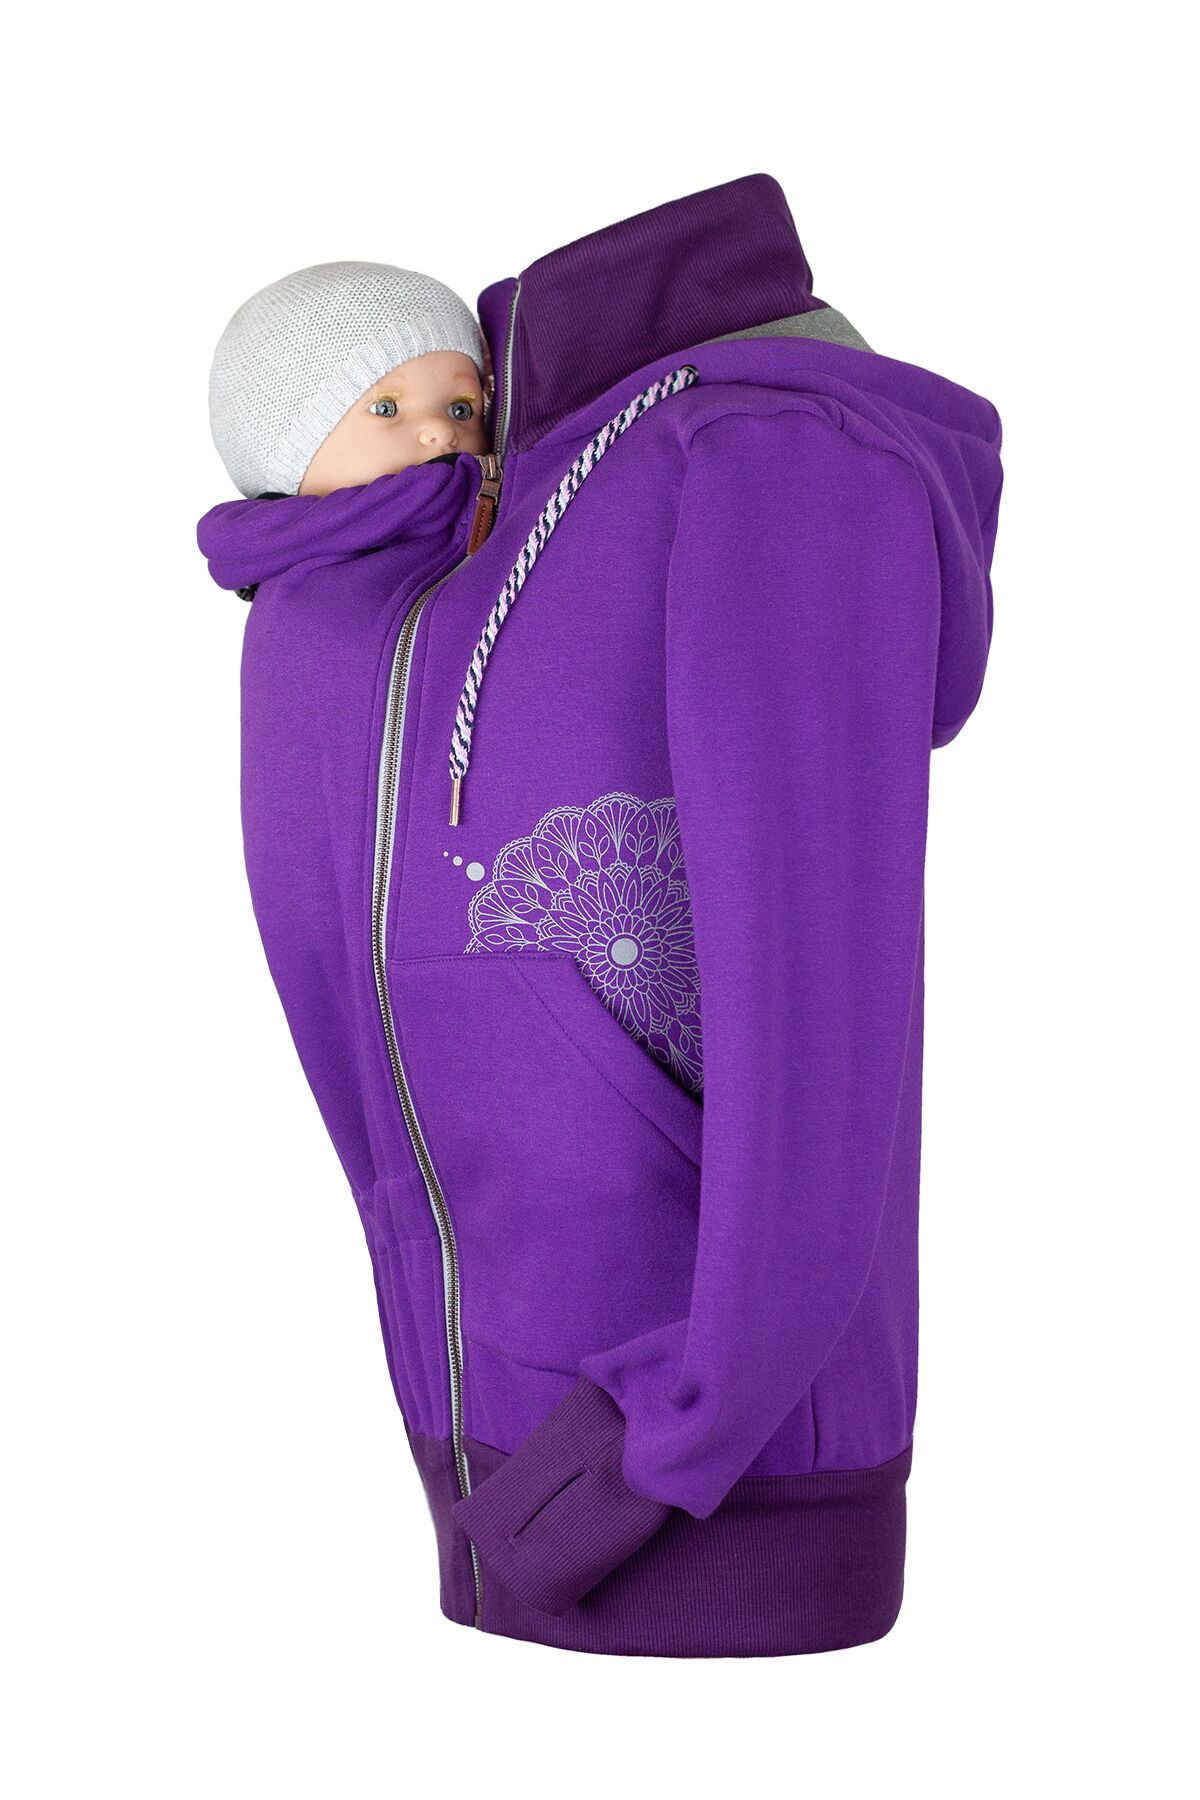 Angelwings TrageHoodie dark purple - 0